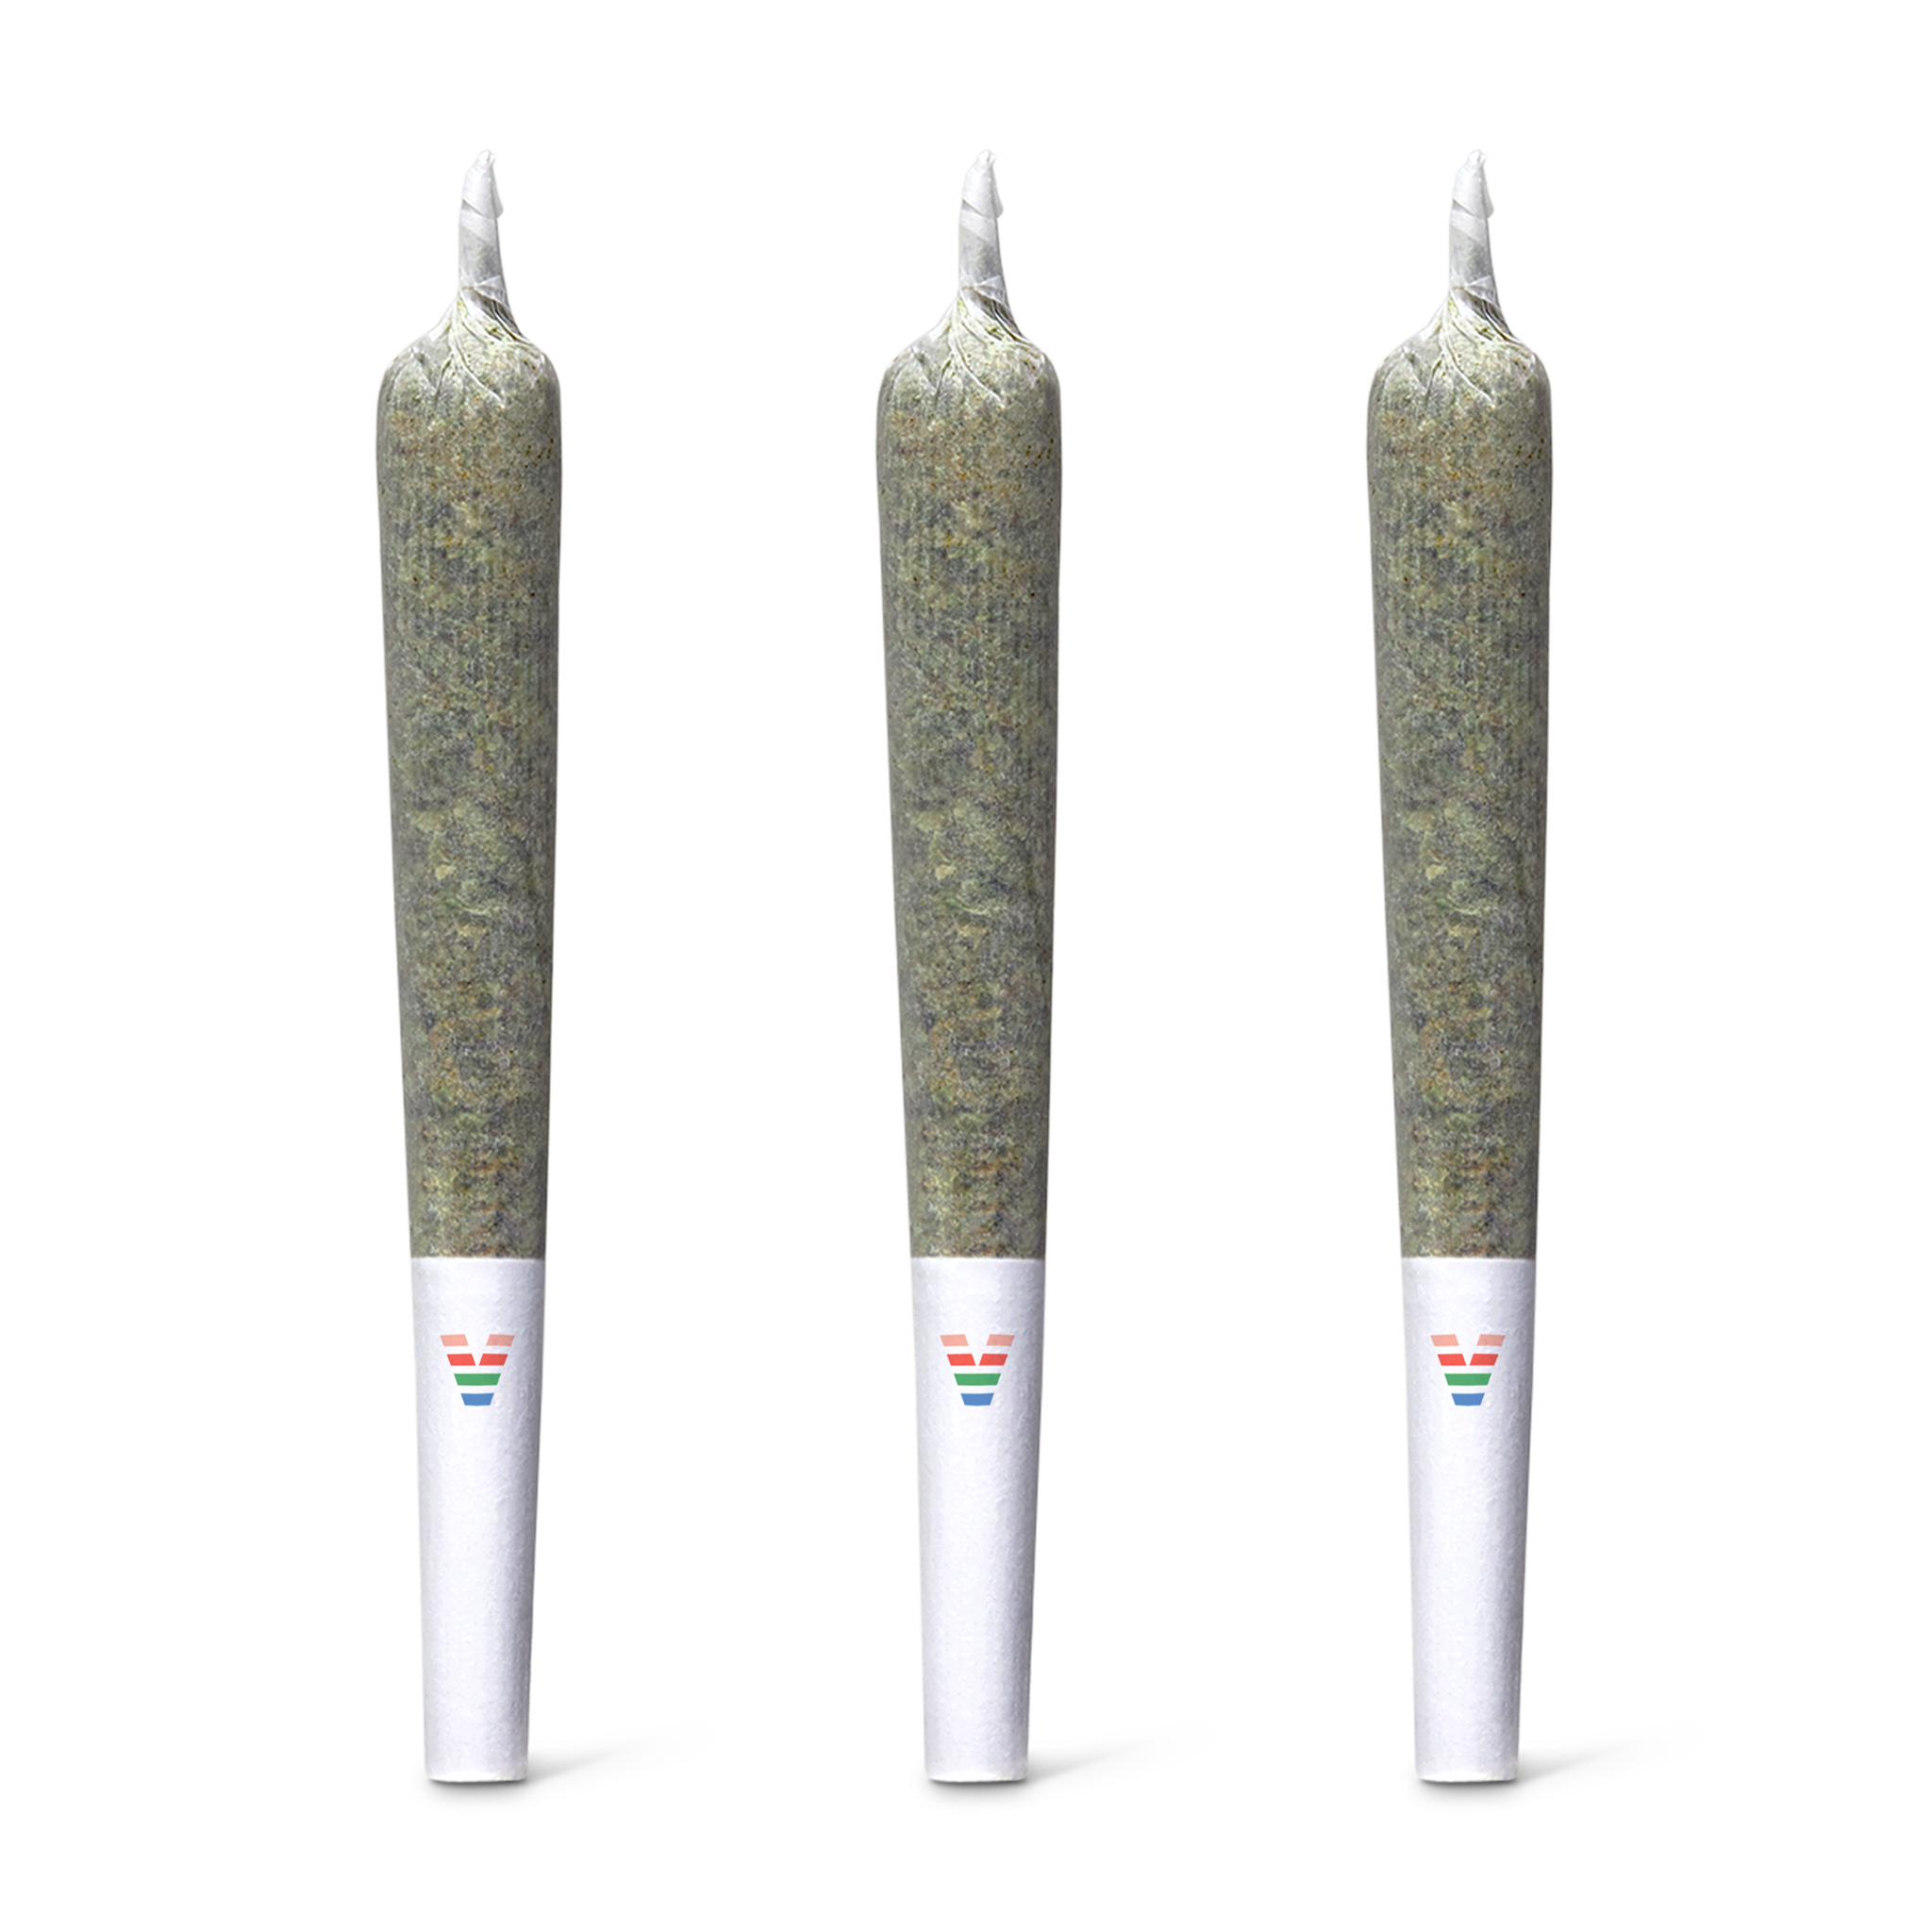 Ace Valley Indica - Kosher Kush Pre-Roll